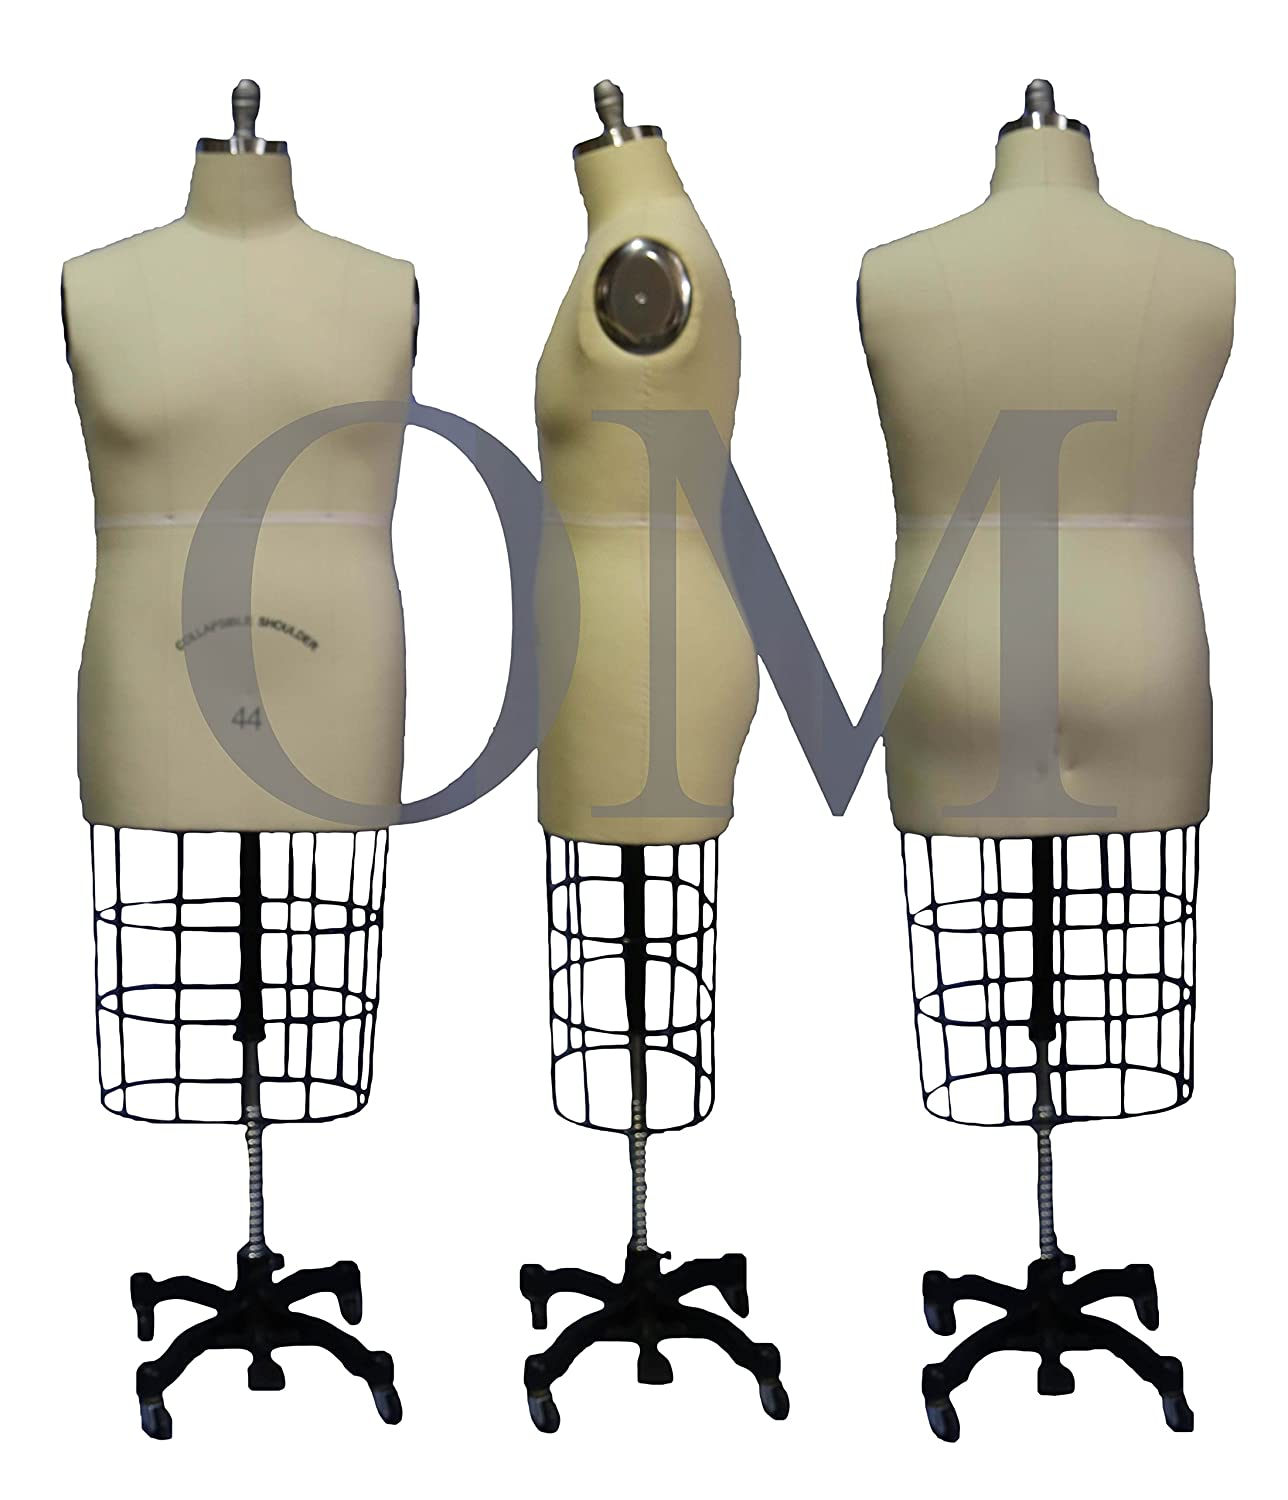 Male Professional Fashion Dressmaker Dress Form Mannequin W/Collapsible Shoulders Size 44 Made By OM (Collapsible Series)